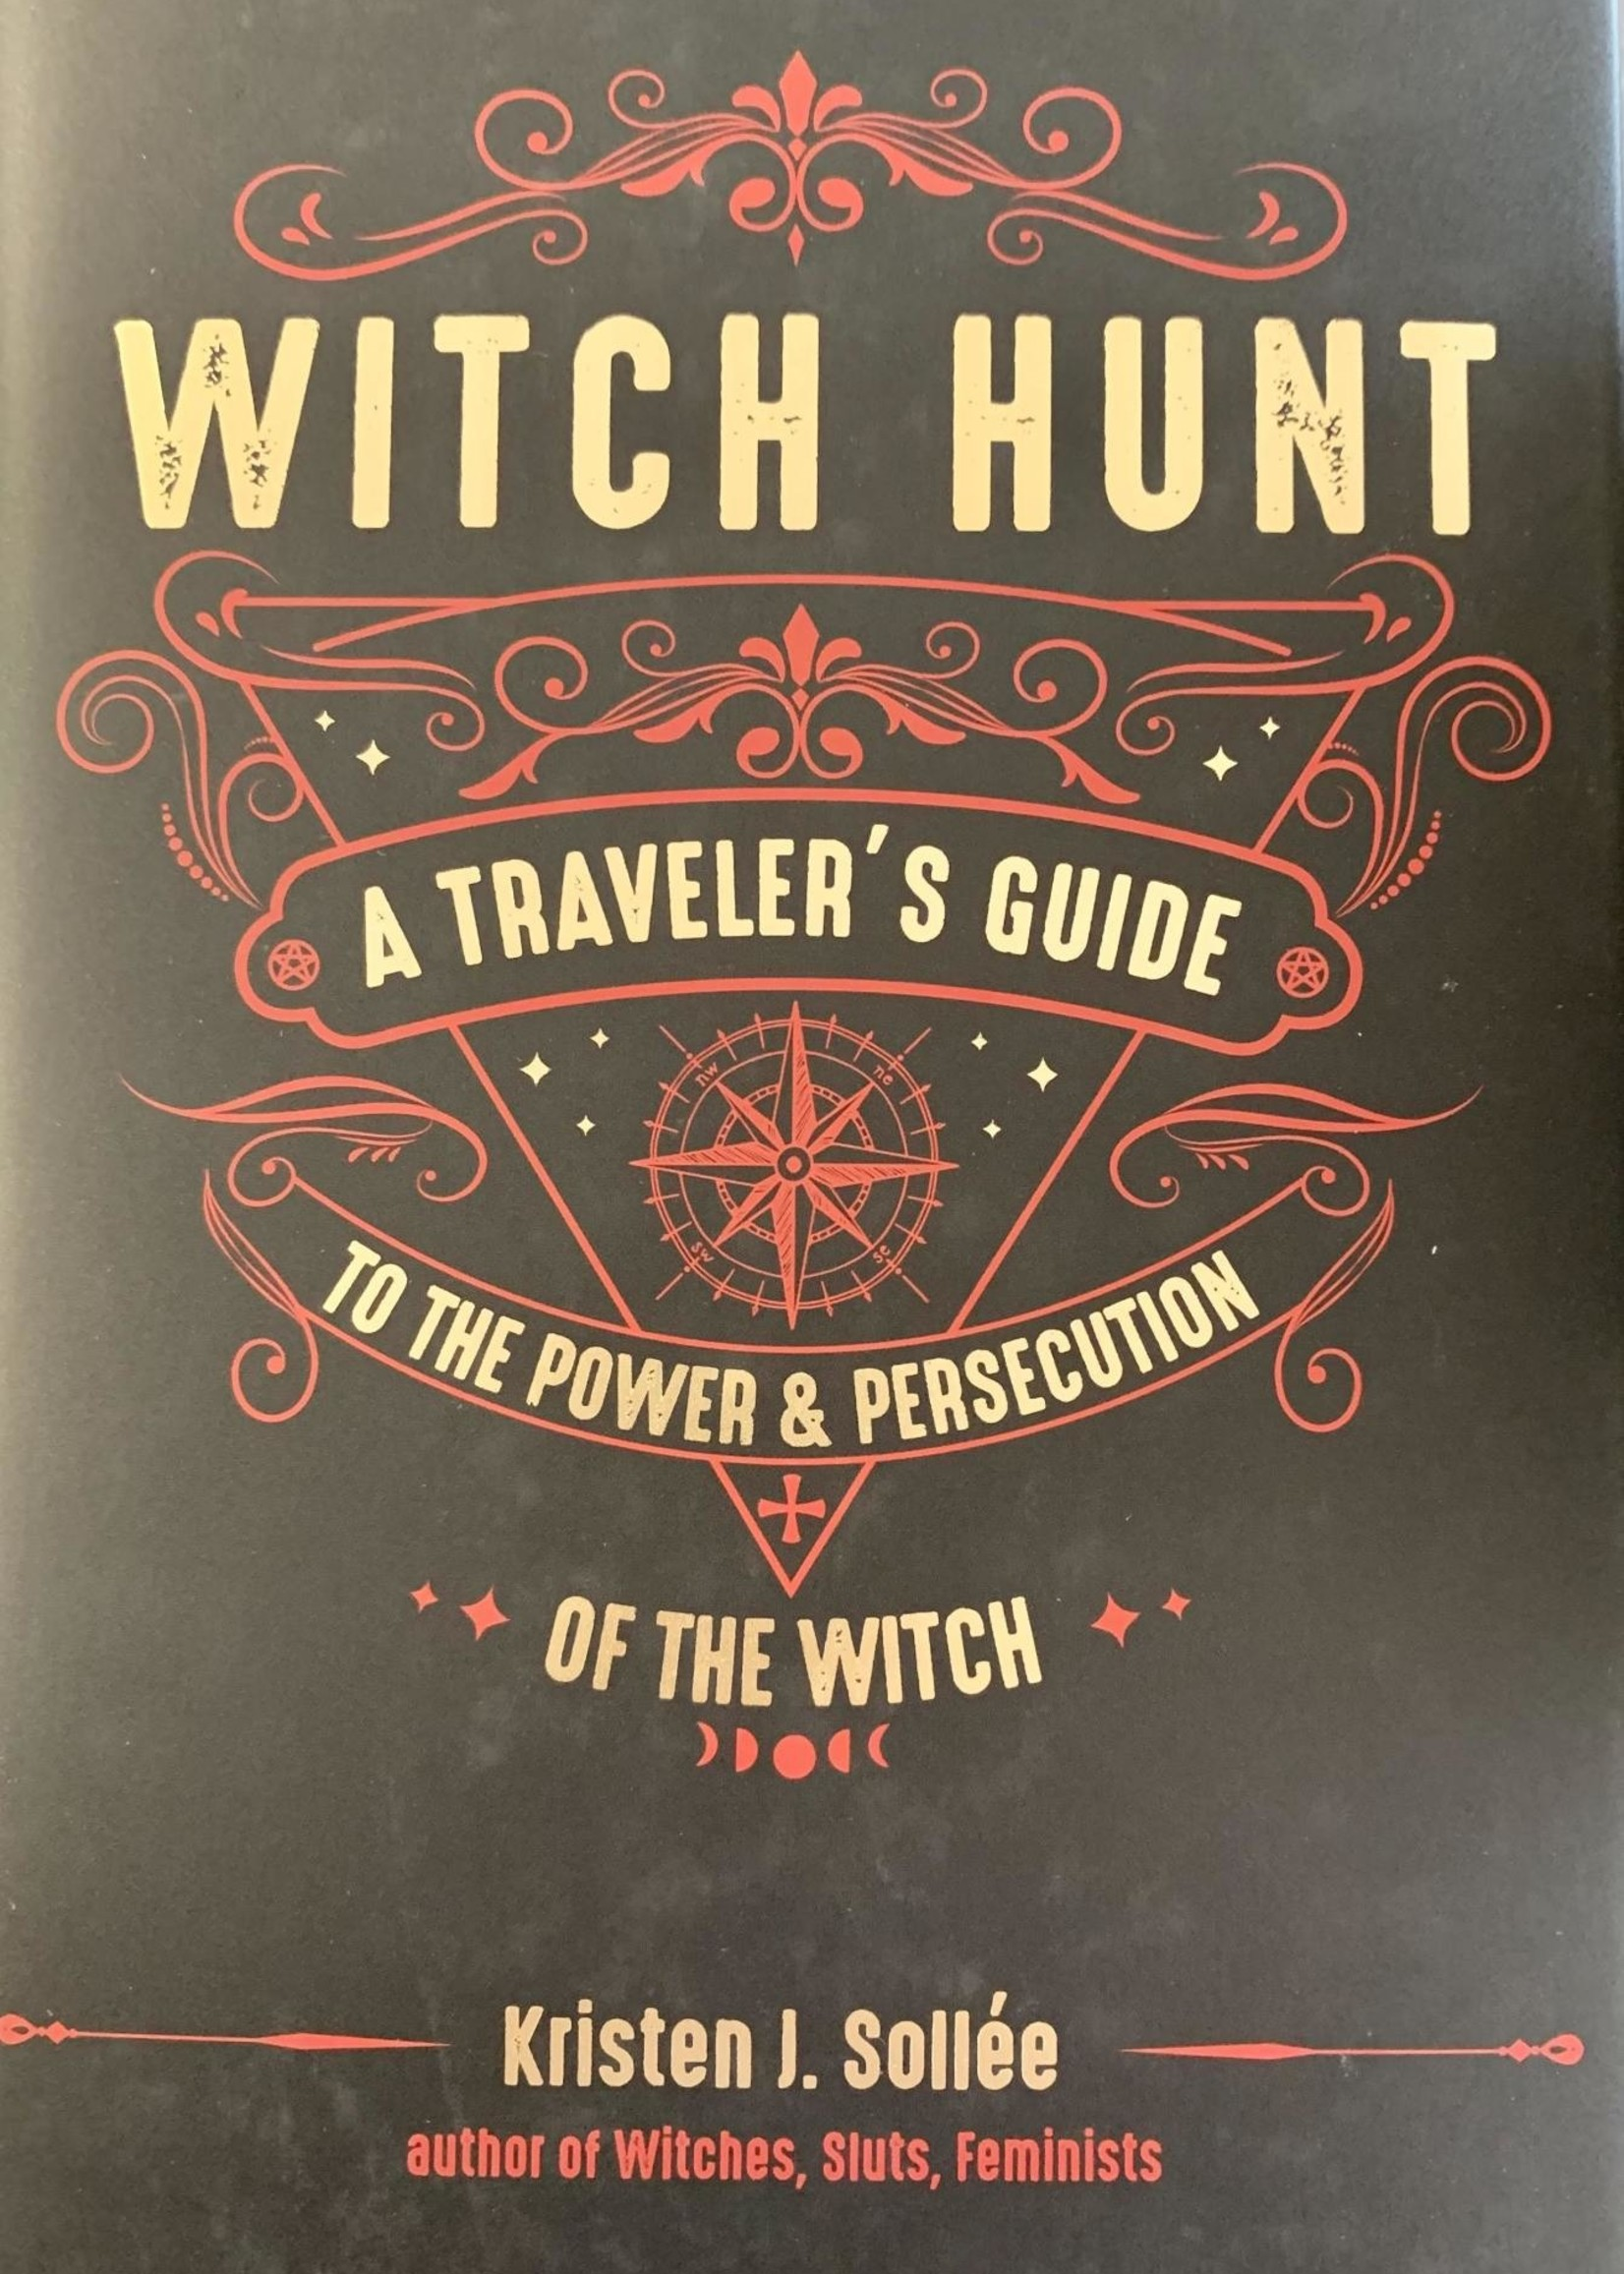 Witch Hunt A Traveler's Guide to the Power and Persecution of the Witch - Kristen J. Sollée